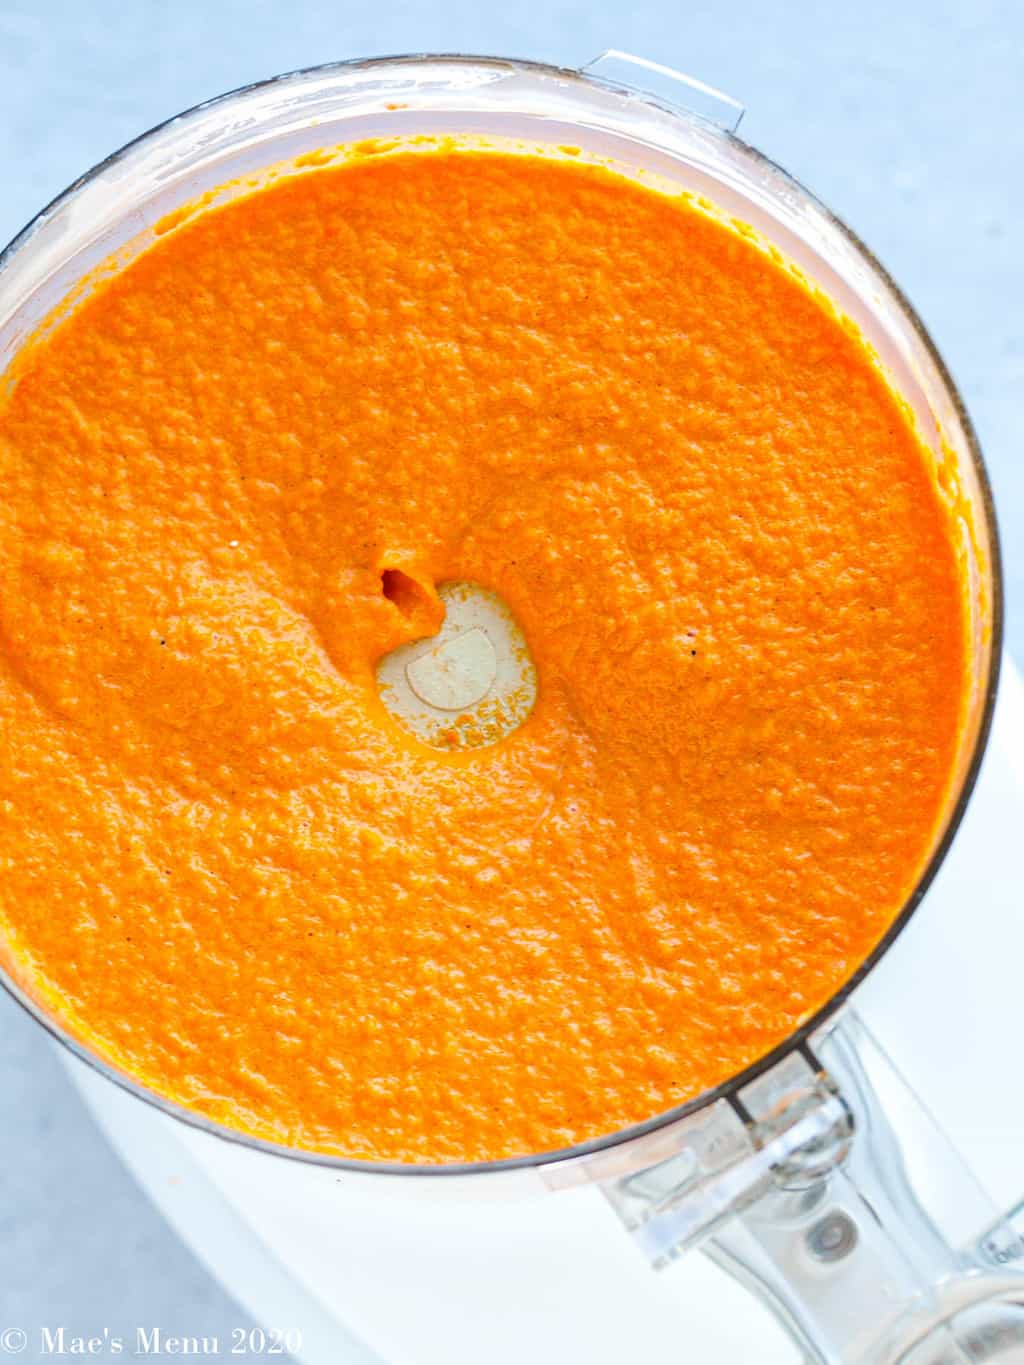 The carrot souffle blended up in the food processor